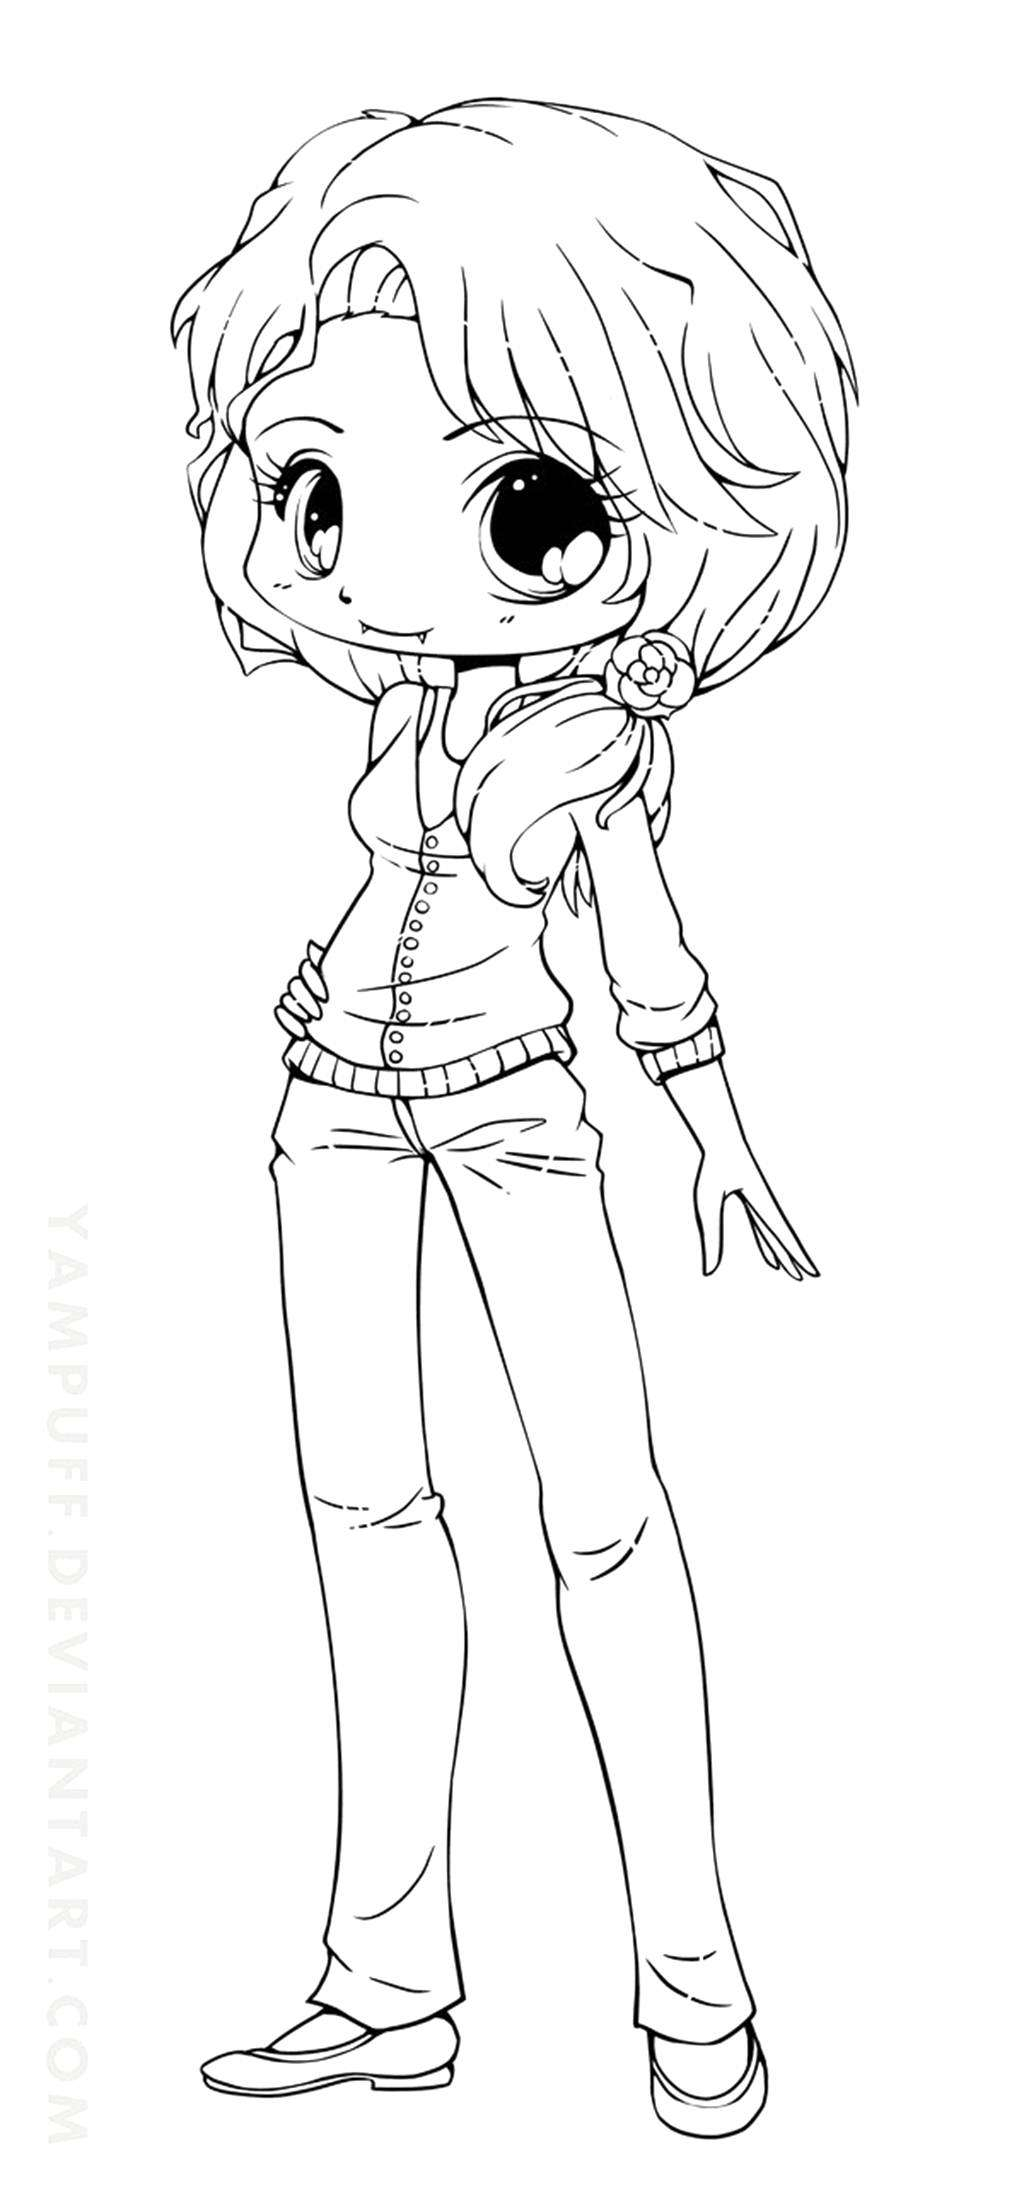 anime little girl coloring pages 8 anime girl coloring pages pdf jpg ai illustrator little girl pages coloring anime